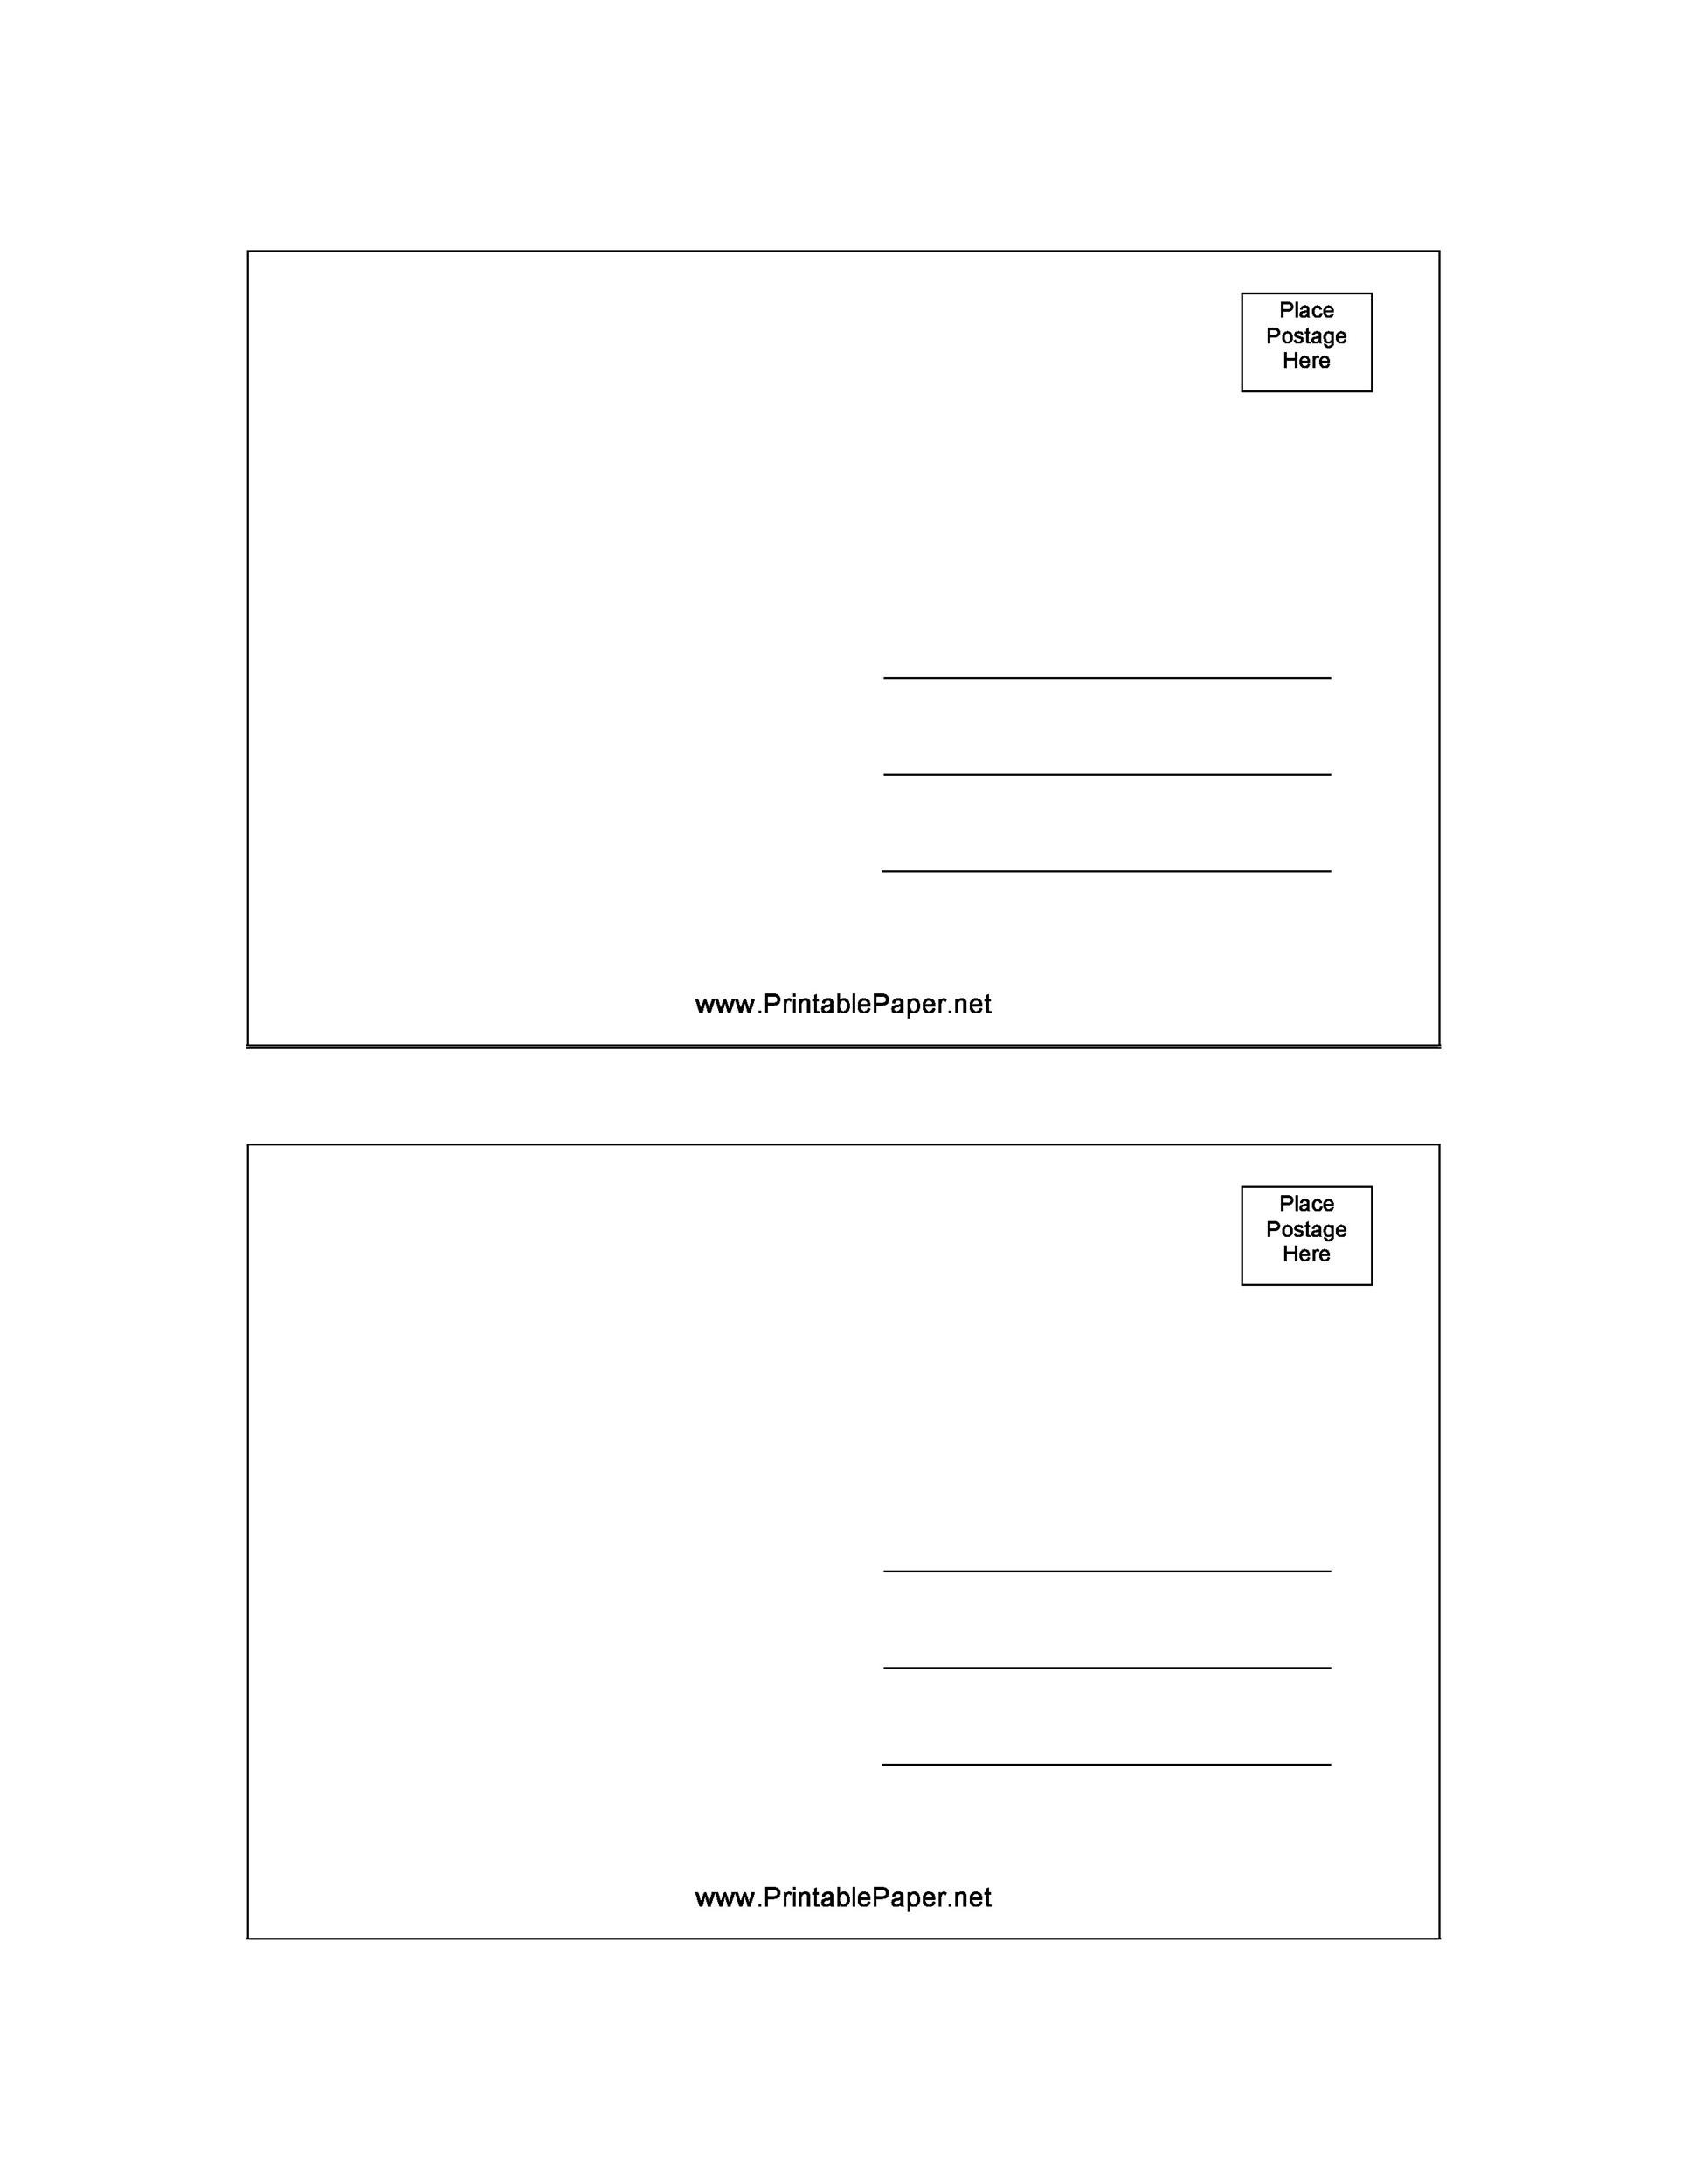 Beautiful Printable Postcard Template 04  Postcard Templates Free